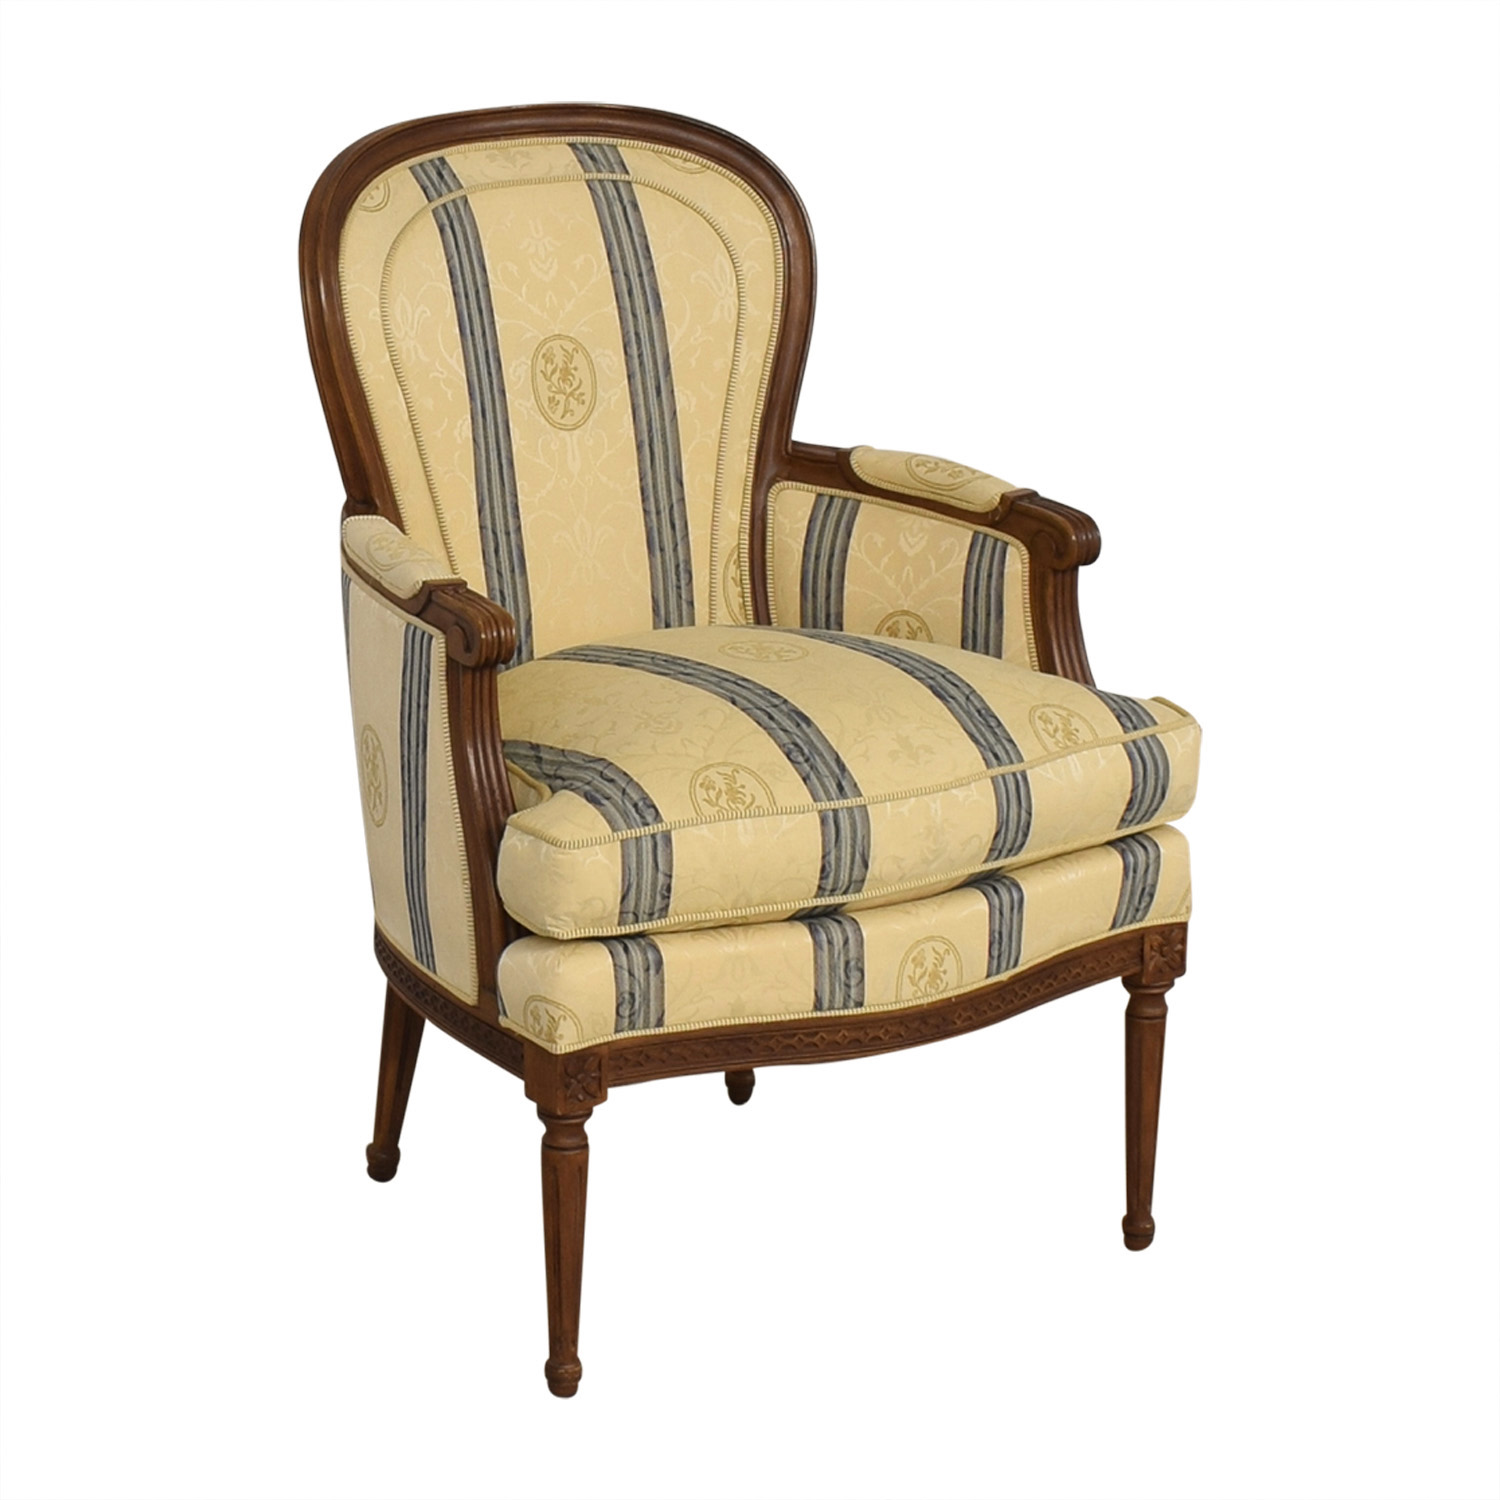 Kravet Kravet Chair second hand